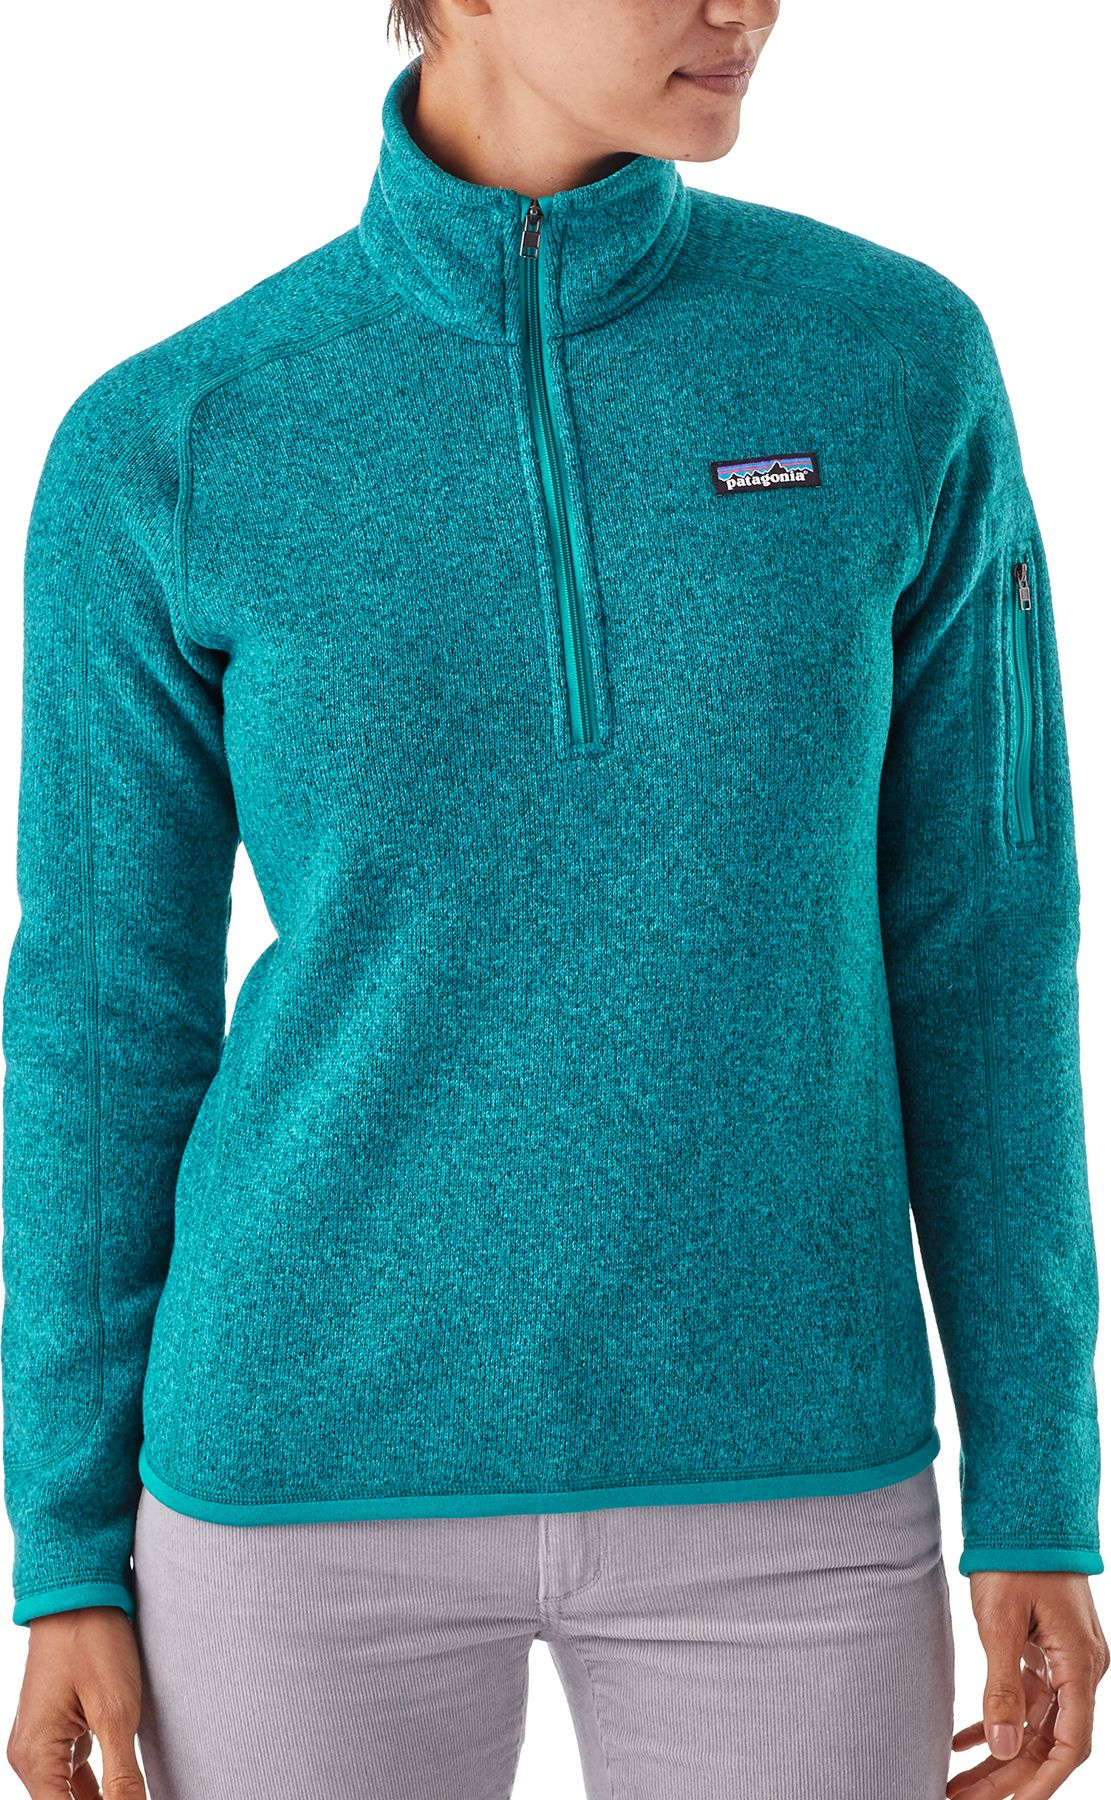 noImageFound ??? - Patagonia Women's Better Sweater Quarter Zip Fleece Jacket